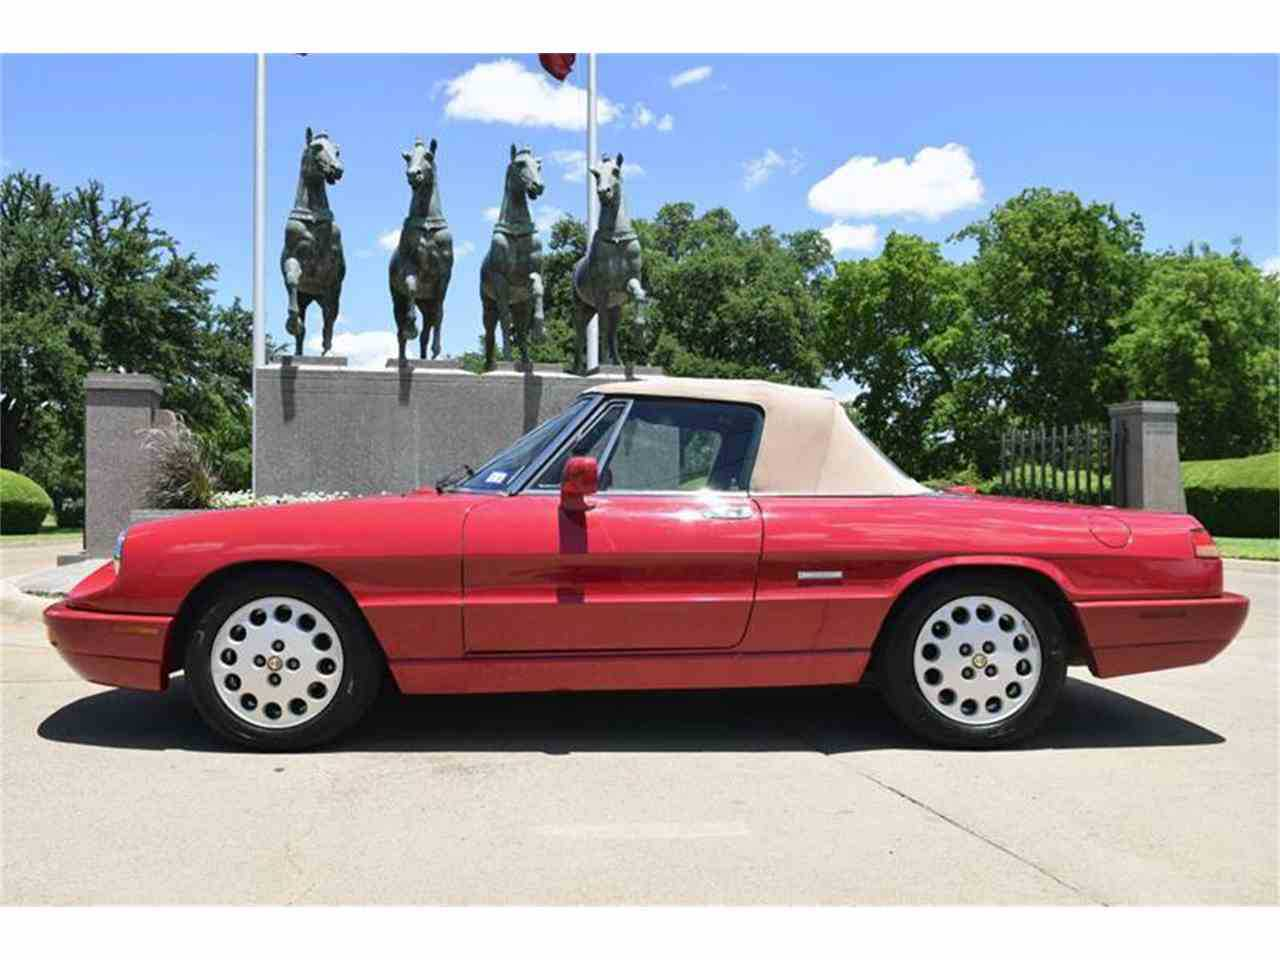 Alfa Romeo Spider For Sale In Fort Worth TX ZARBBNR - 1994 alfa romeo spider